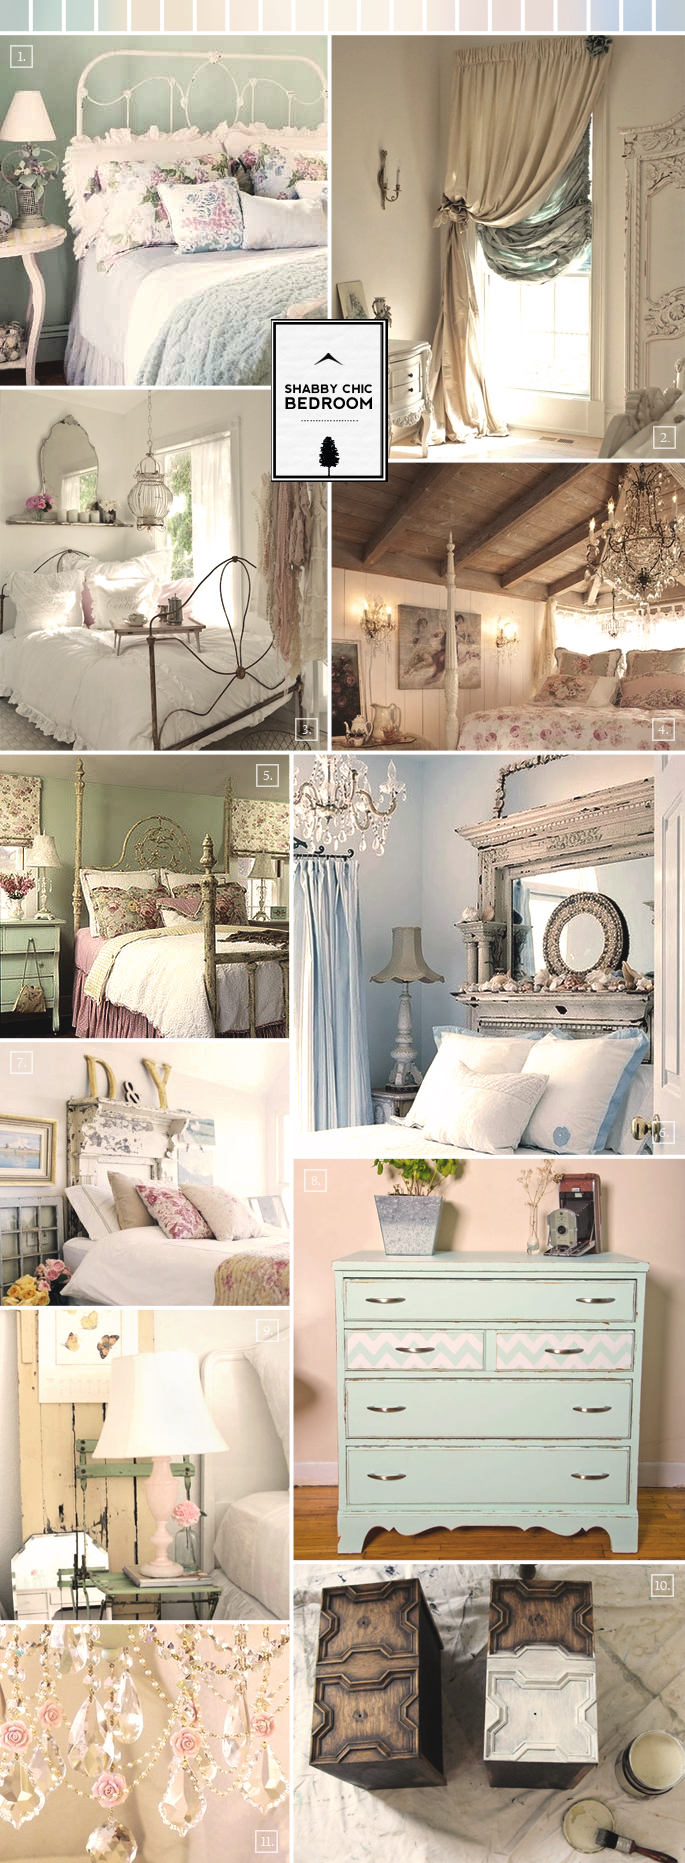 shabby chic bedroom interior design shabby chic bedroom ideas and decor inspiration home tree atlas bedrooms ideas shabby